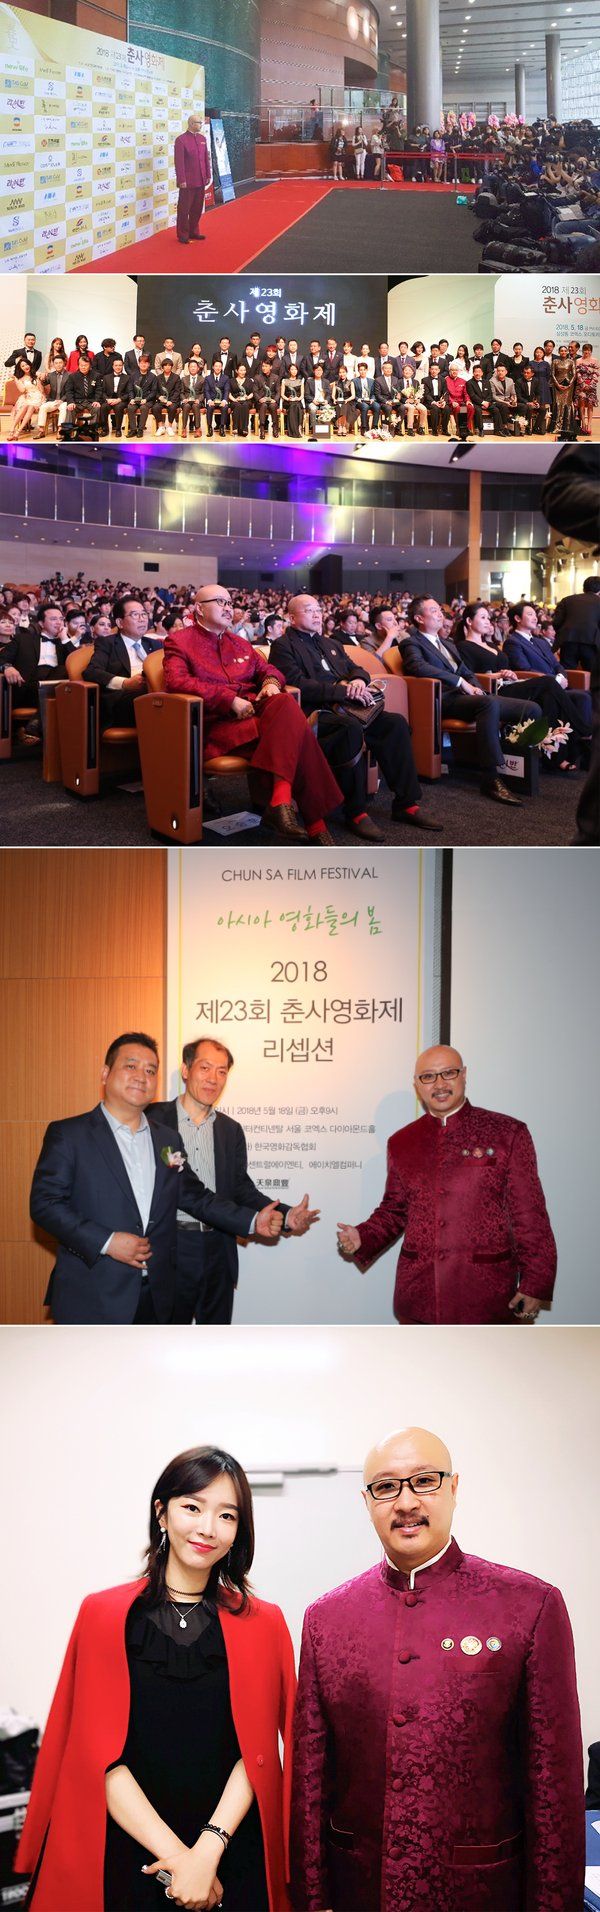 Figure 1-3: Dato'Sri Prof. Ng, Tat-yung attended the 23th Chun Sa Film Festival as an officiating guest. Figure 5: Dato'Sri Prof. Ng, Tat-yung and Famous Korean Actress Bae Seul-Ki presenting Popular Actor Award Dato'Sri Prof. Ng, Tat-yung and Famous Korean Actress Bae Seul-Ki